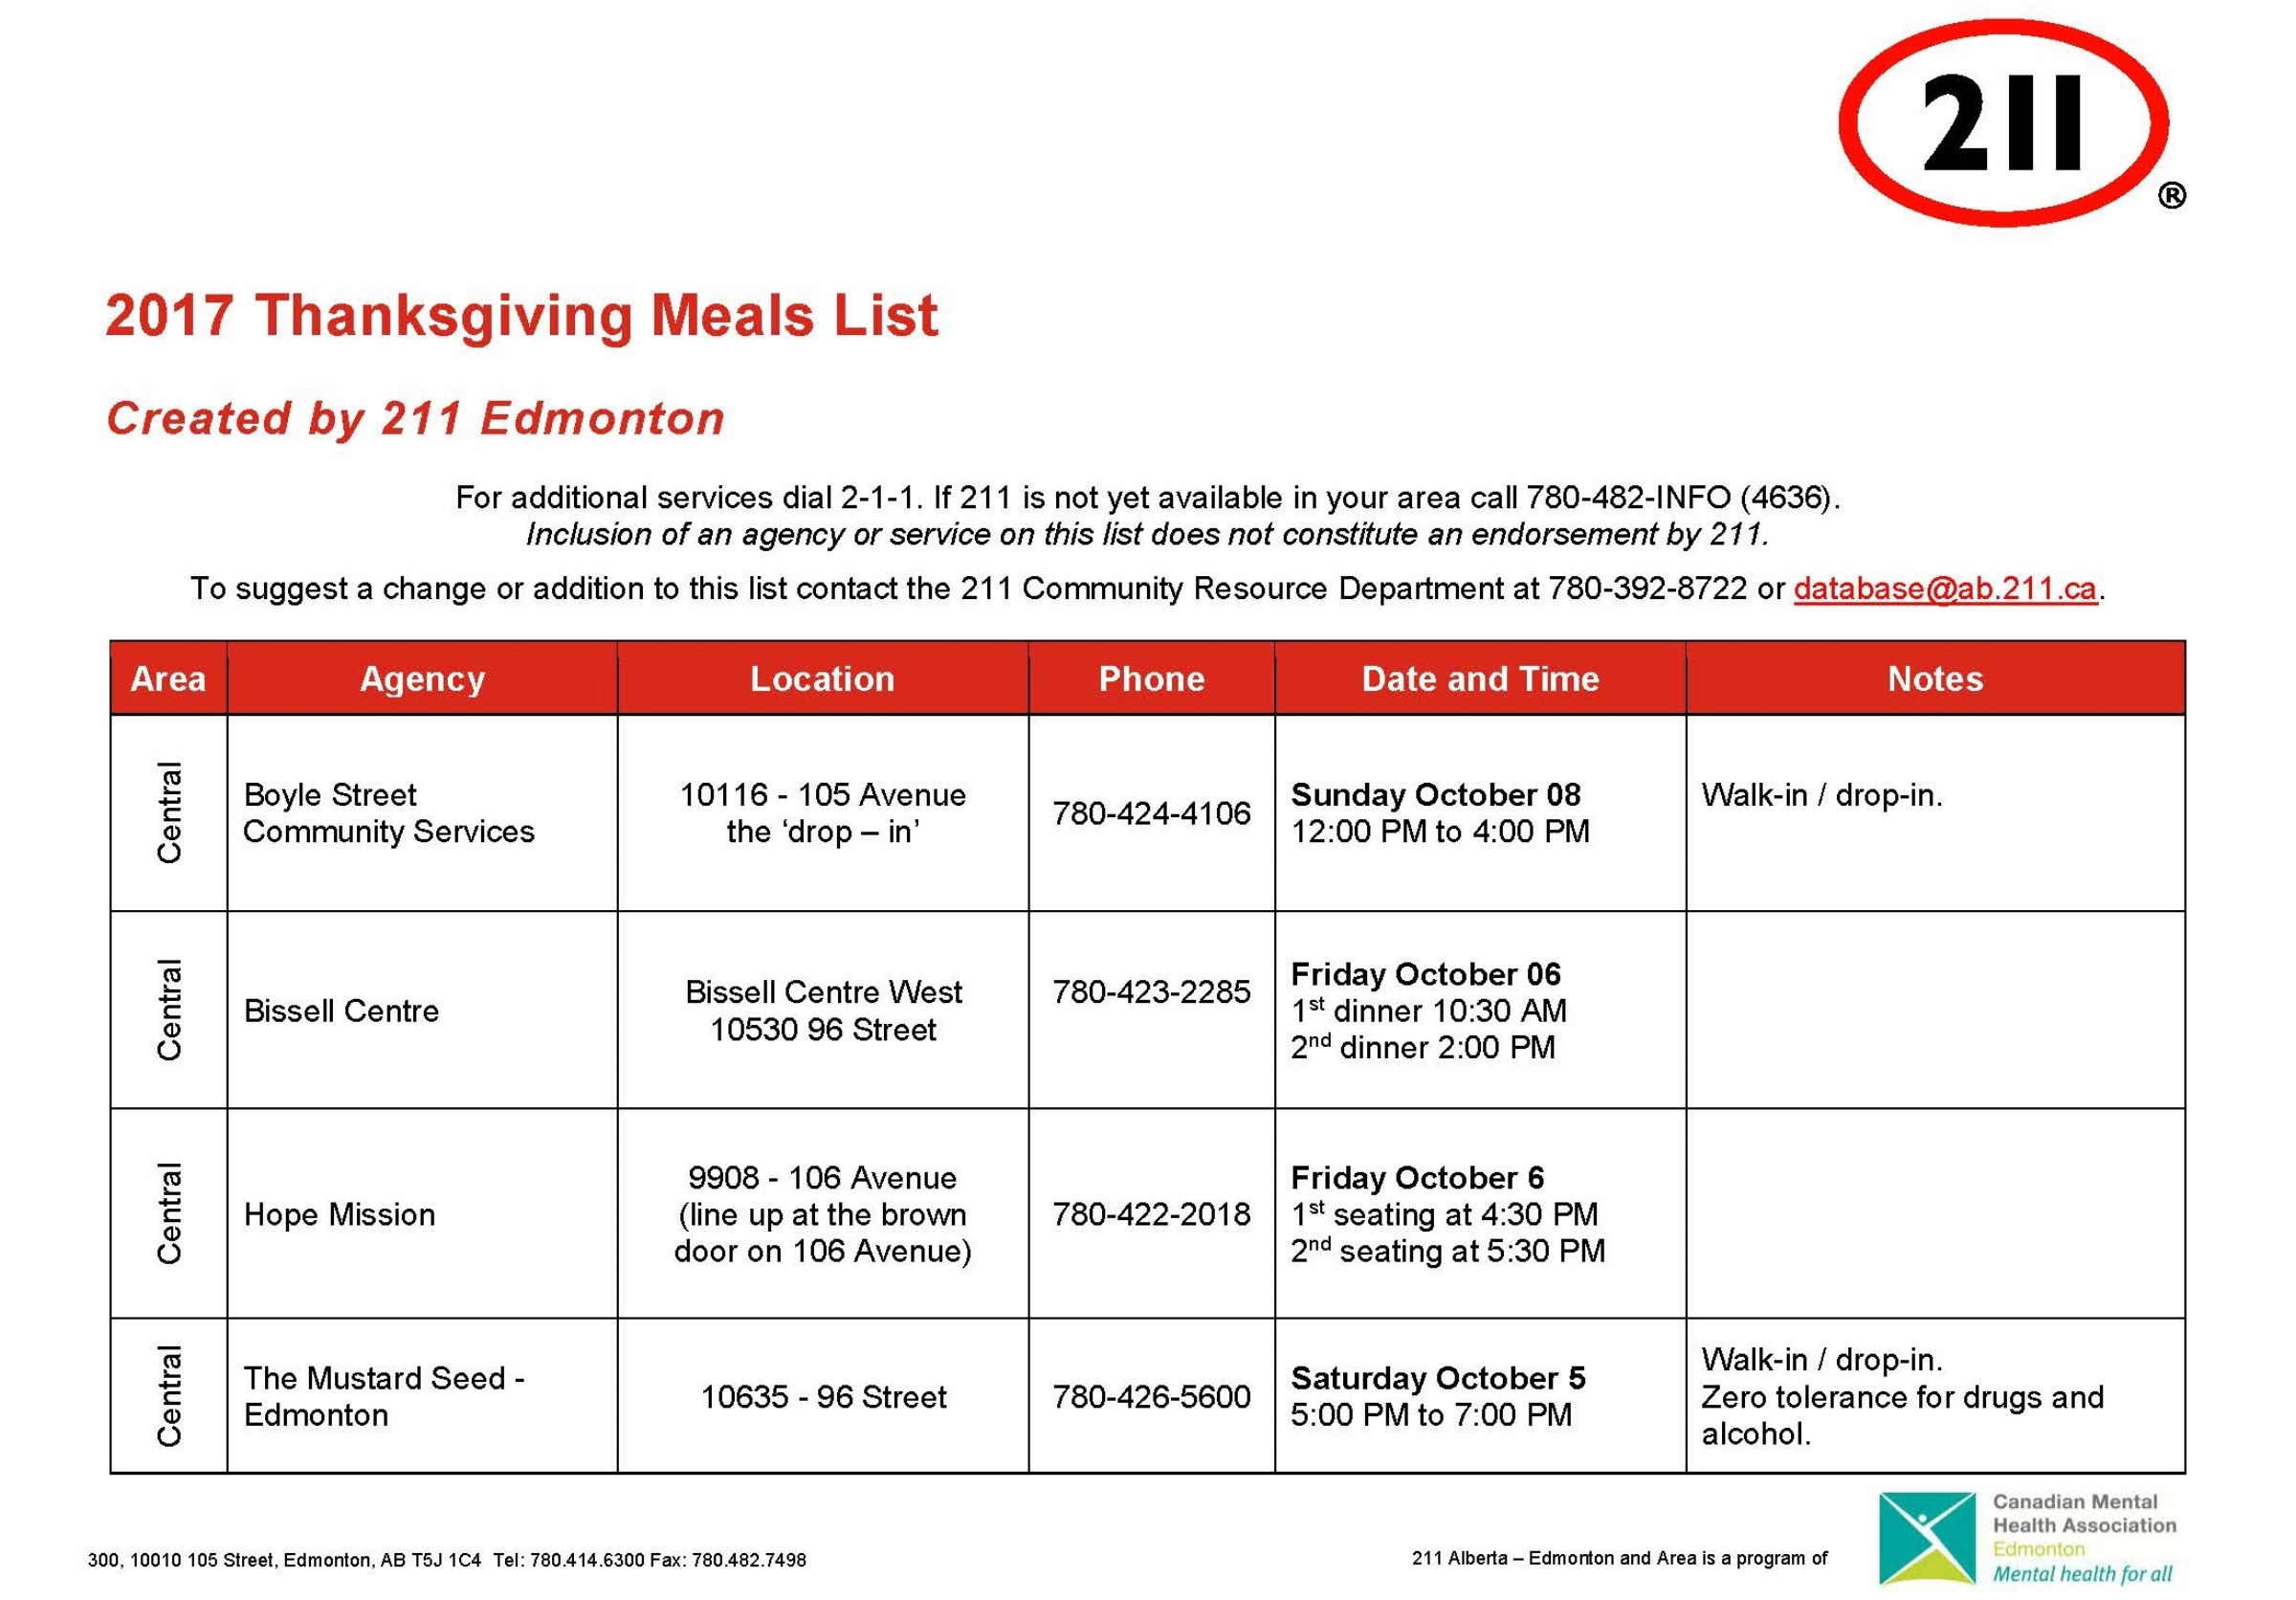 2017_HolidayMeals_Thanksgiving_Public - Copy_Page_1.jpg